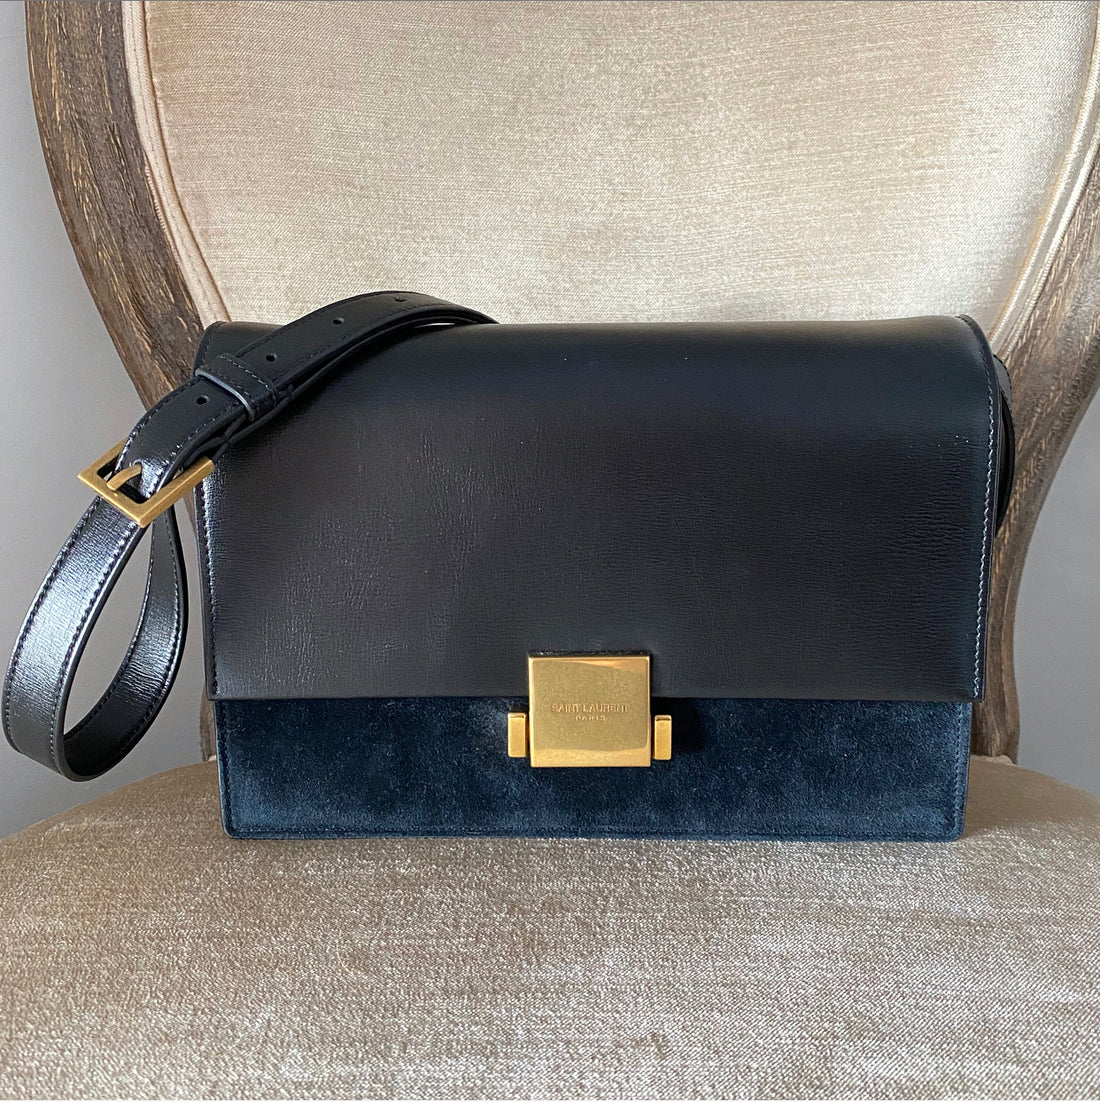 Saint Laurent Black Leather and Suede Bellechasse Crossbody Bag